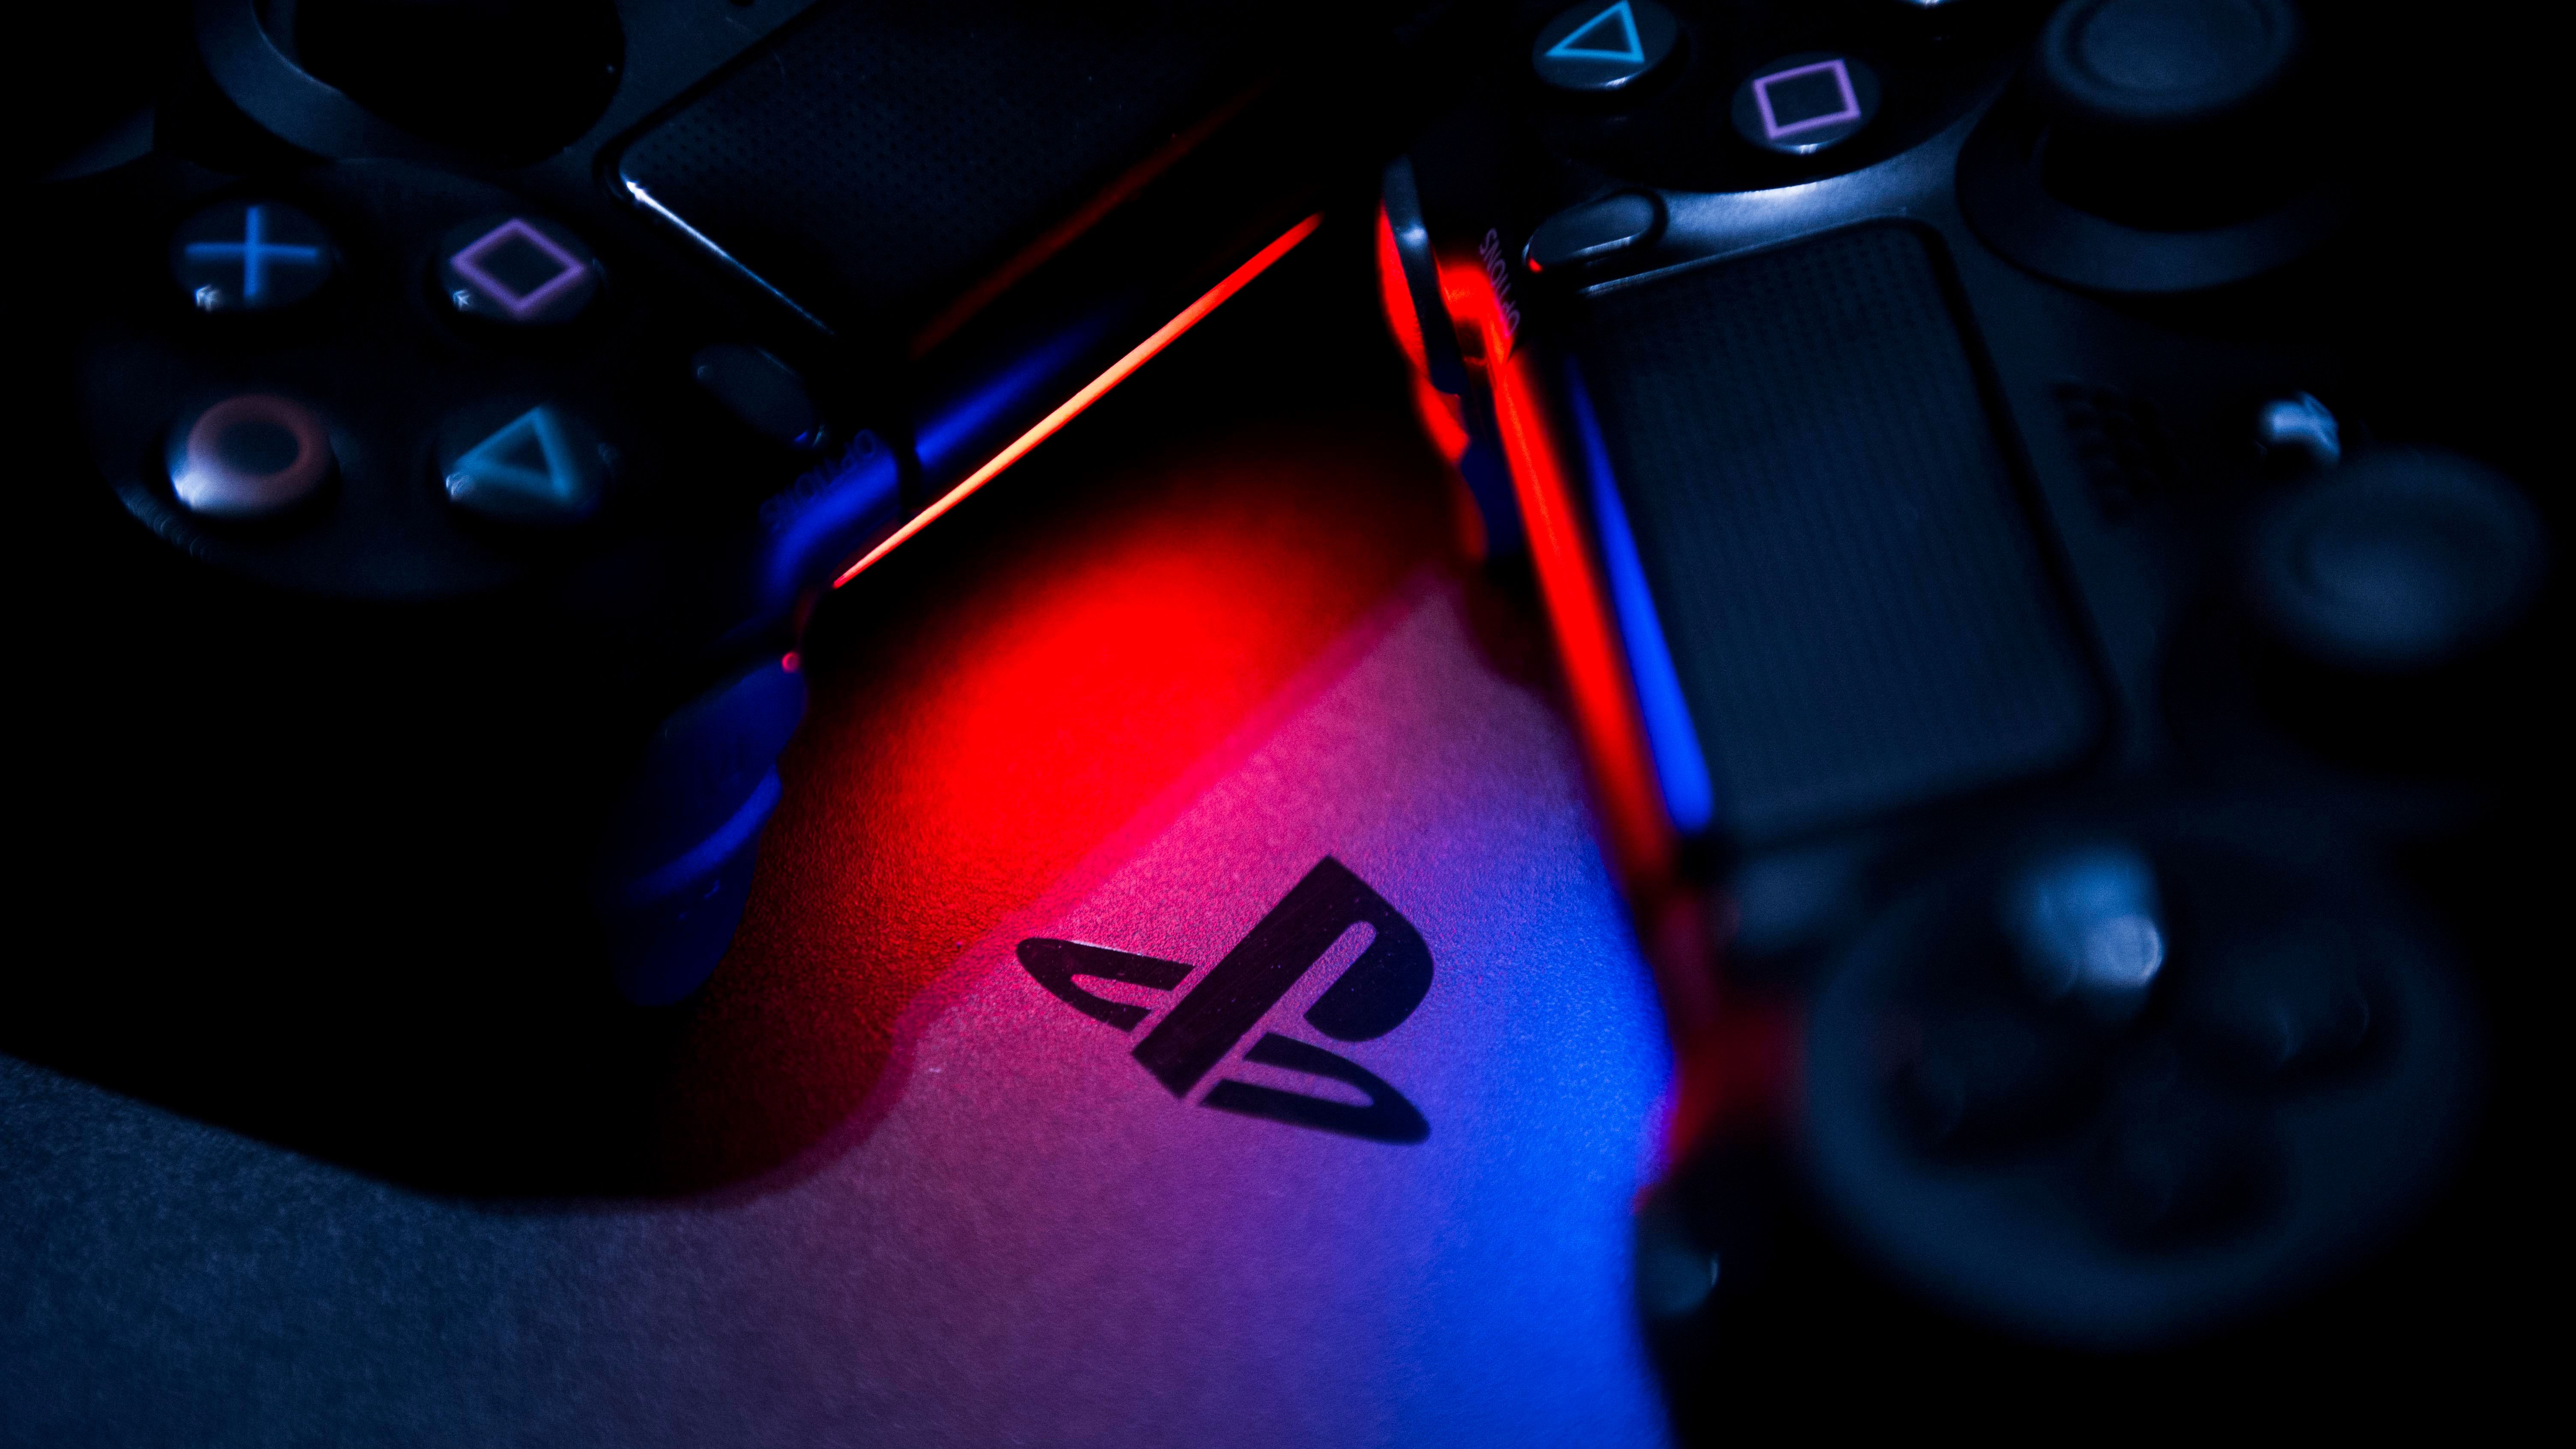 Latest PS5 rumor claims it performs better than Xbox